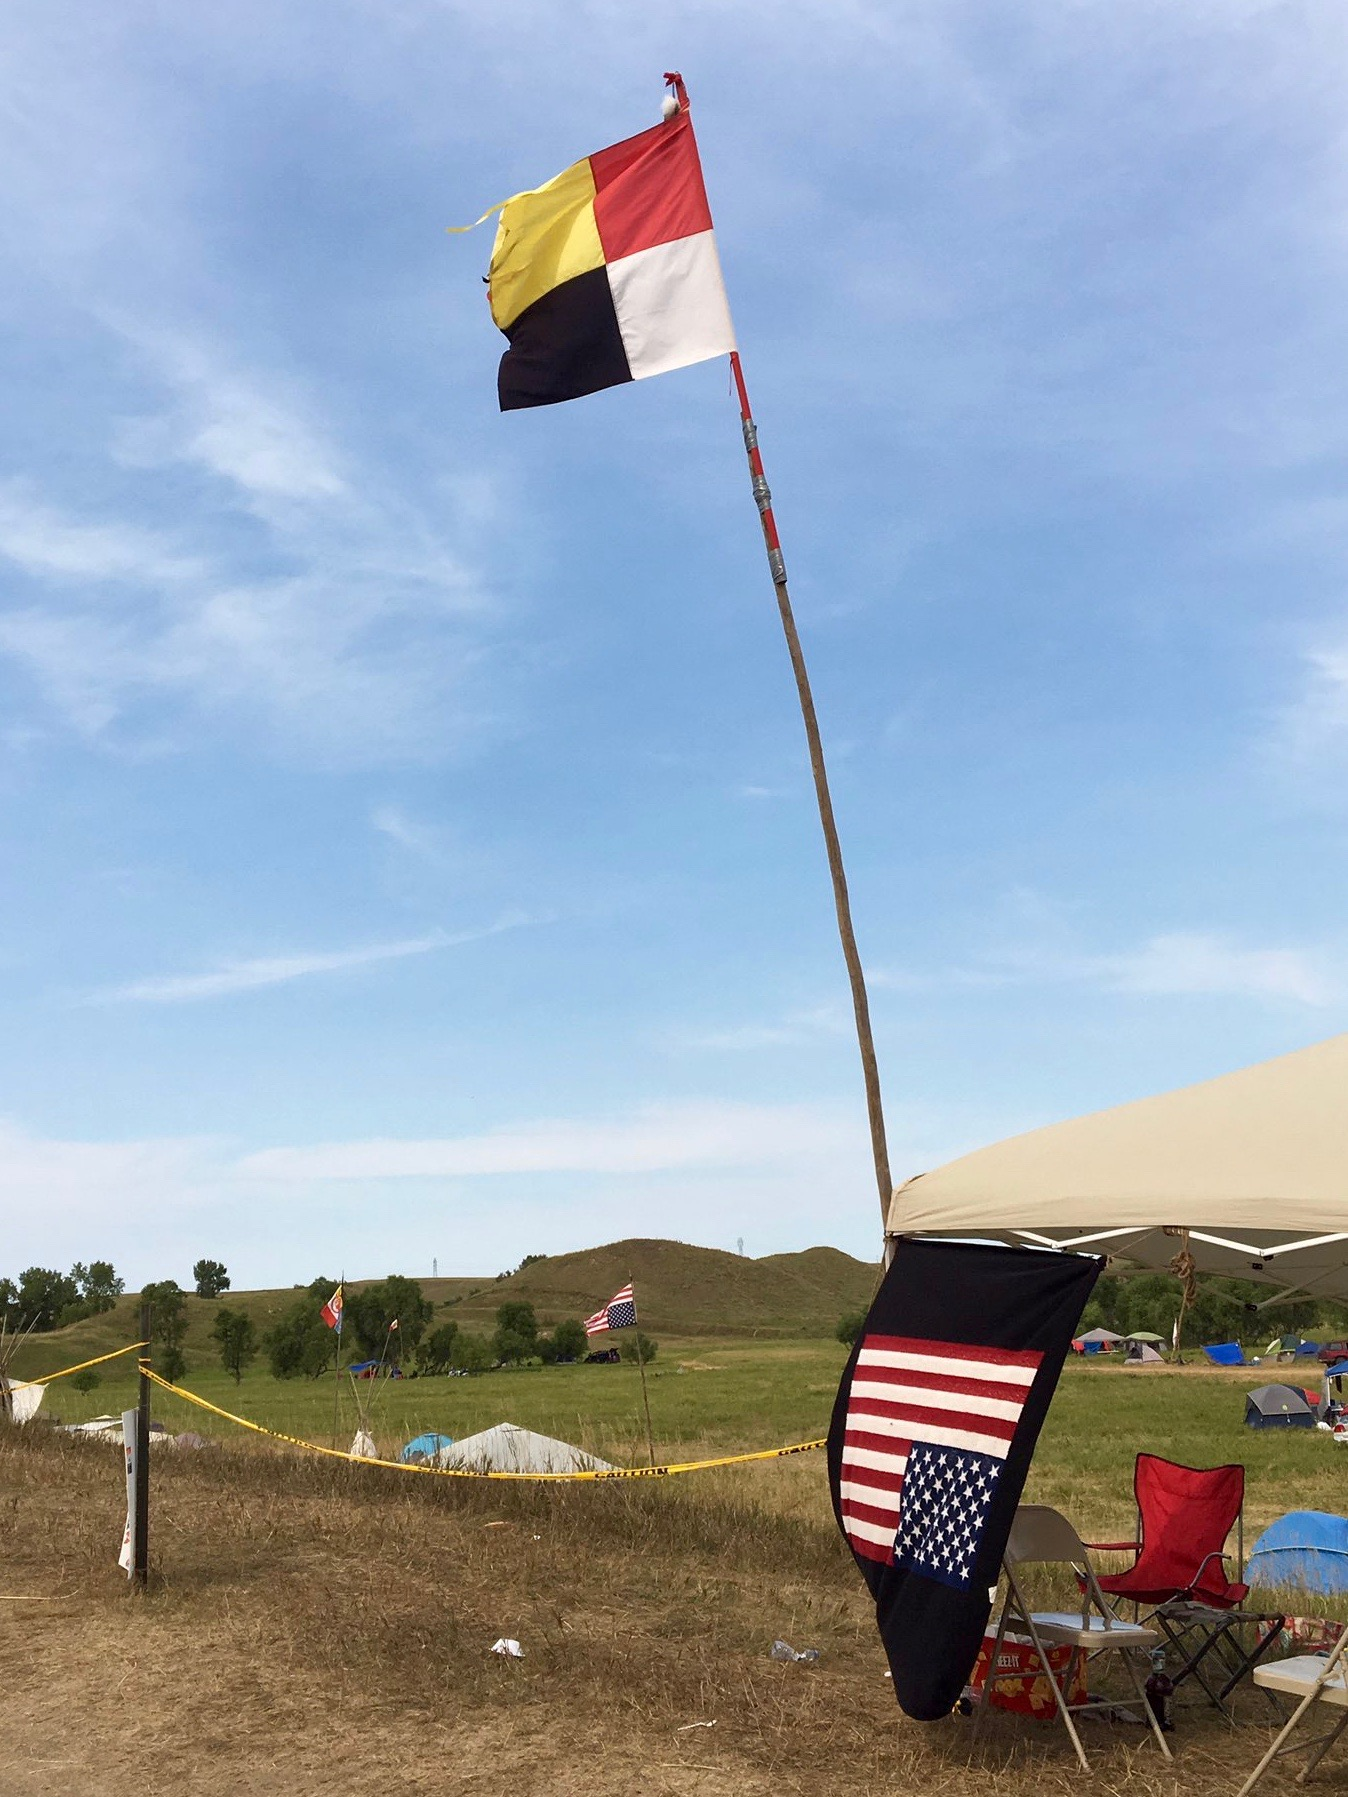 Dave Archambault: #NoDAPL struggle unfolds on Standing Rock Sioux Tribe's land